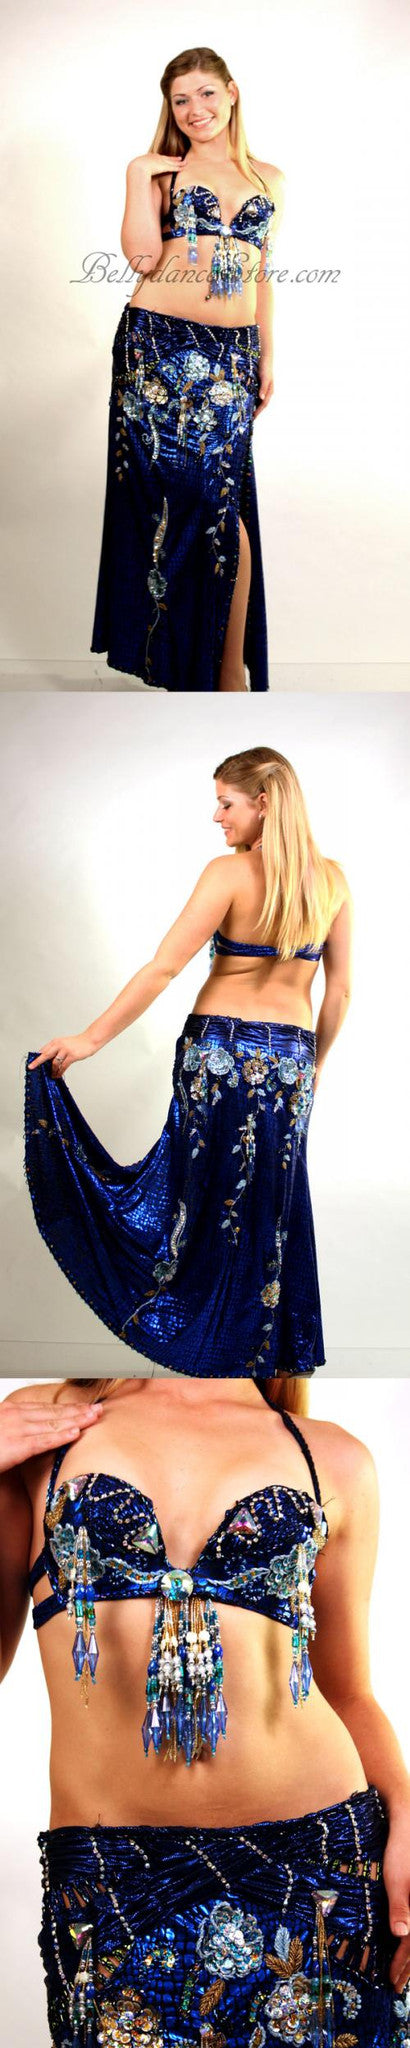 Egyptian Jewel Costume Sale $50 Off